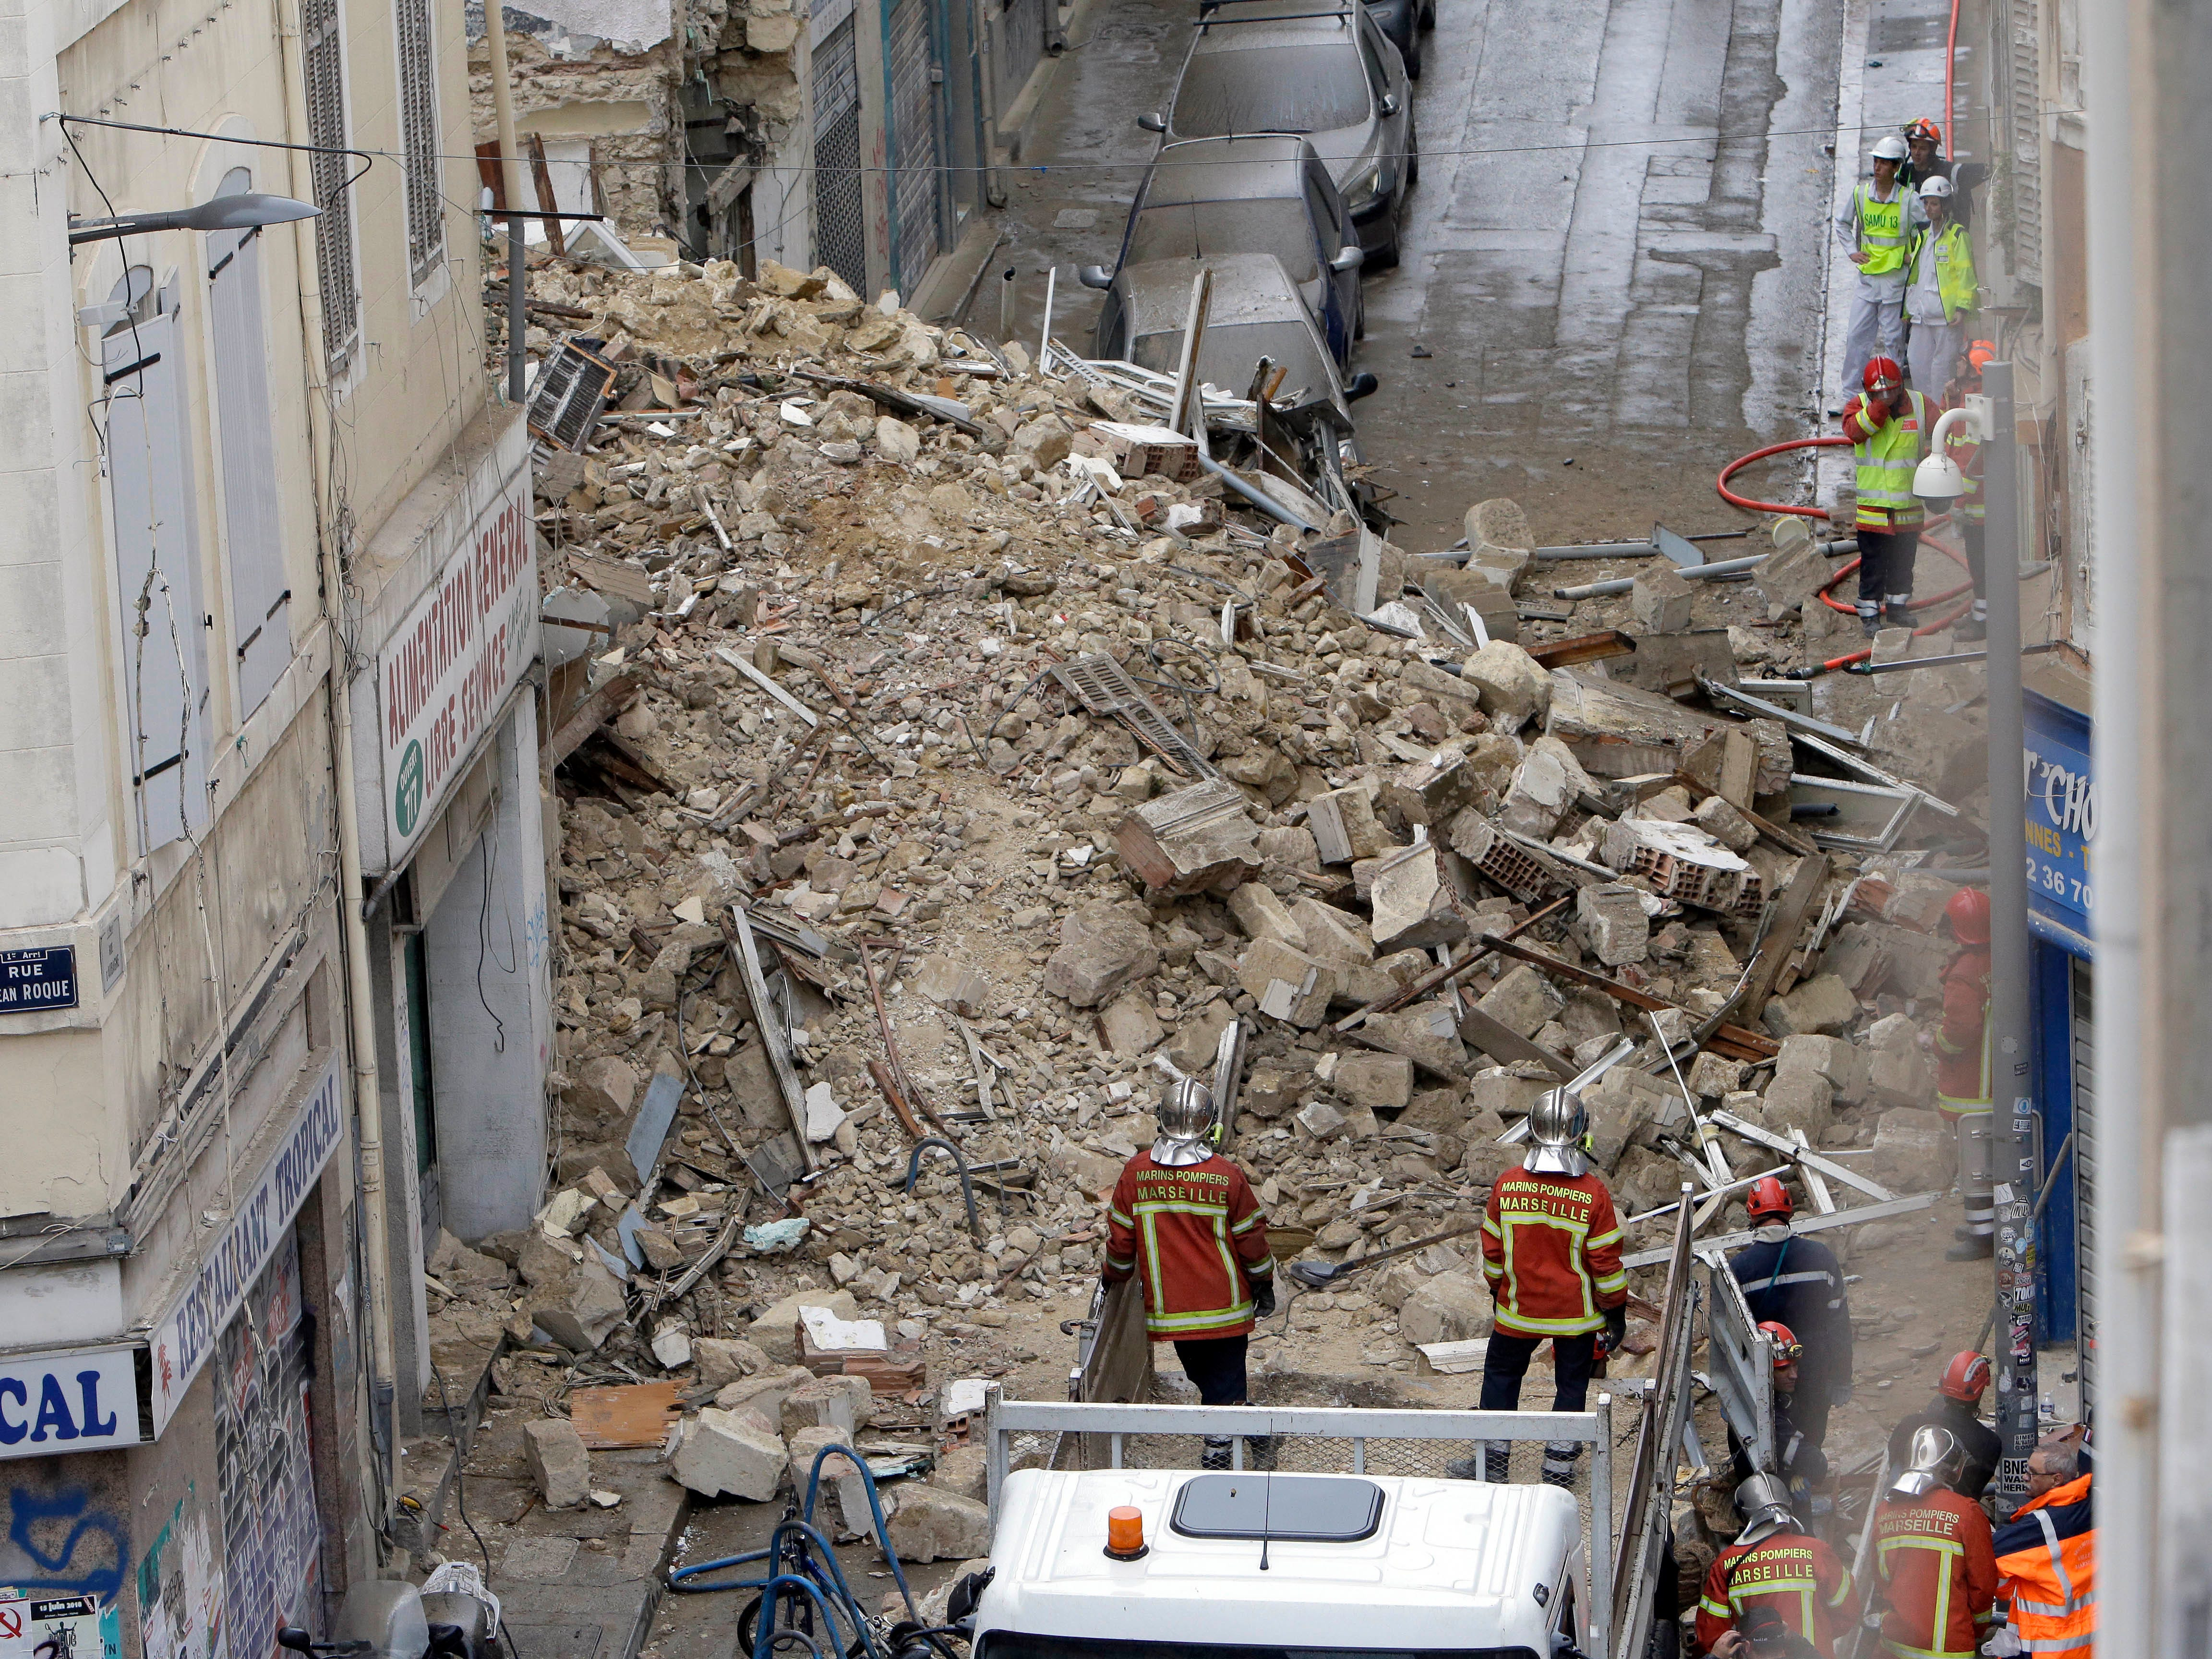 Firefighters work at the scene where buildings collapsed in Marseille, southern France, Monday, Nov. 5, 2018.